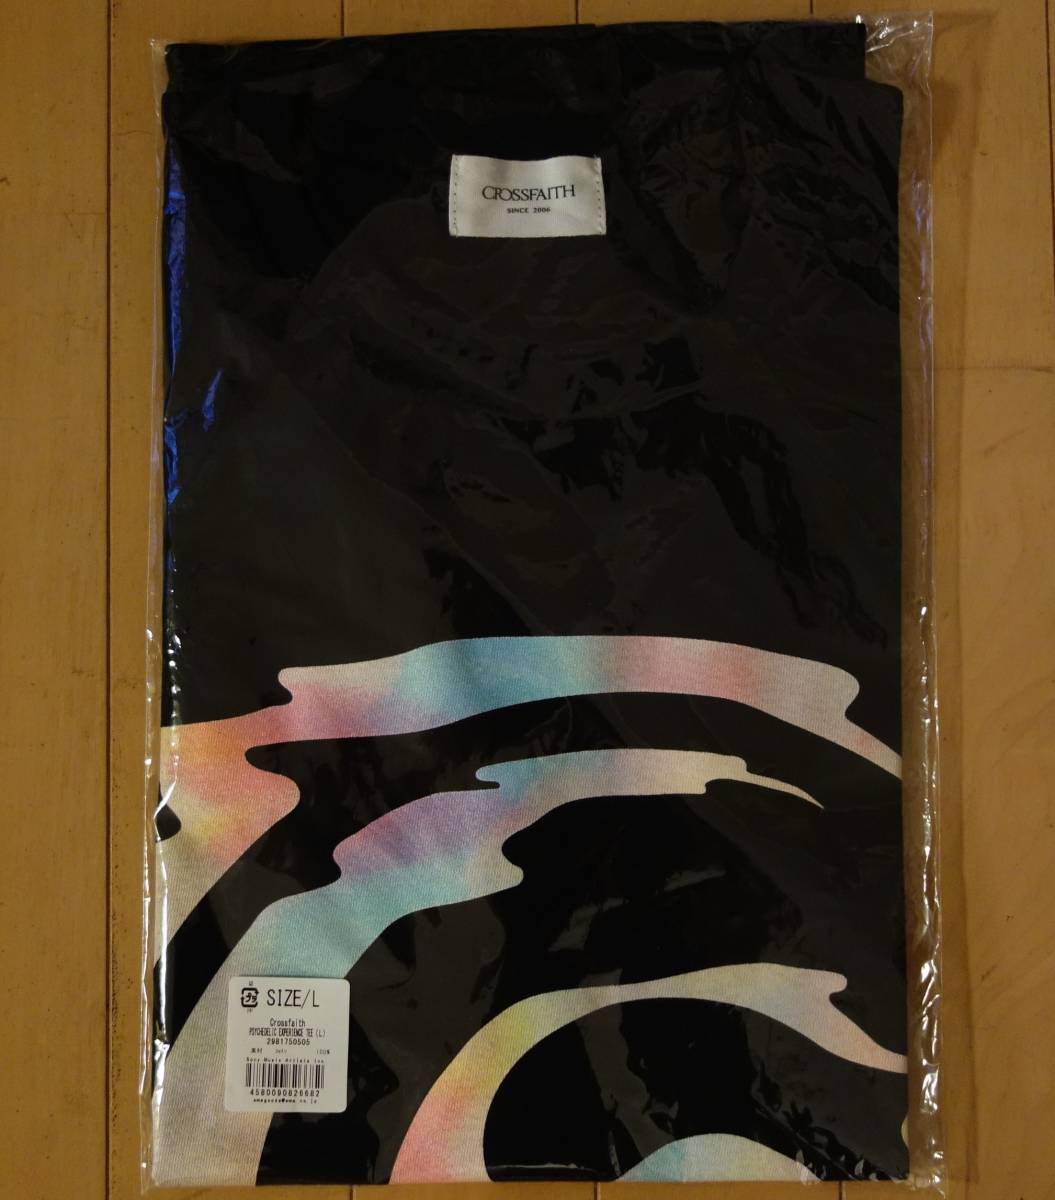 CROSSFAITH psychedelic expreriece tee Tシャツ(L)(新品/未開封/送料160円)